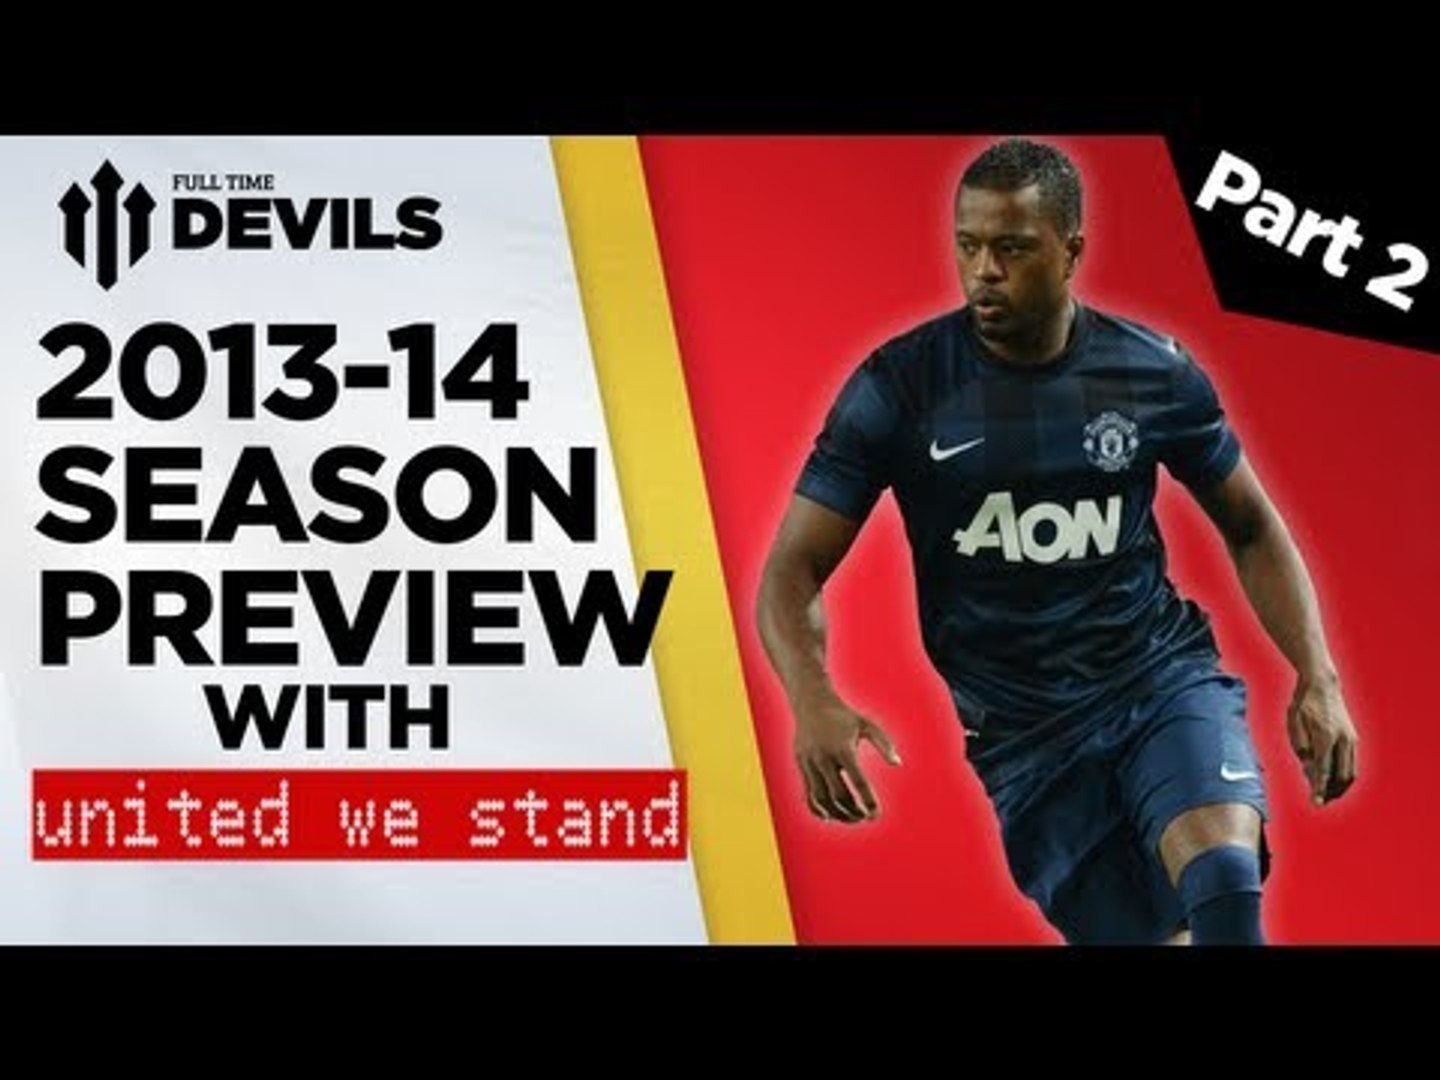 Manchester United 2013/14 Season Preview Pt.2 | feat. 'United We Stand' | DEVILS